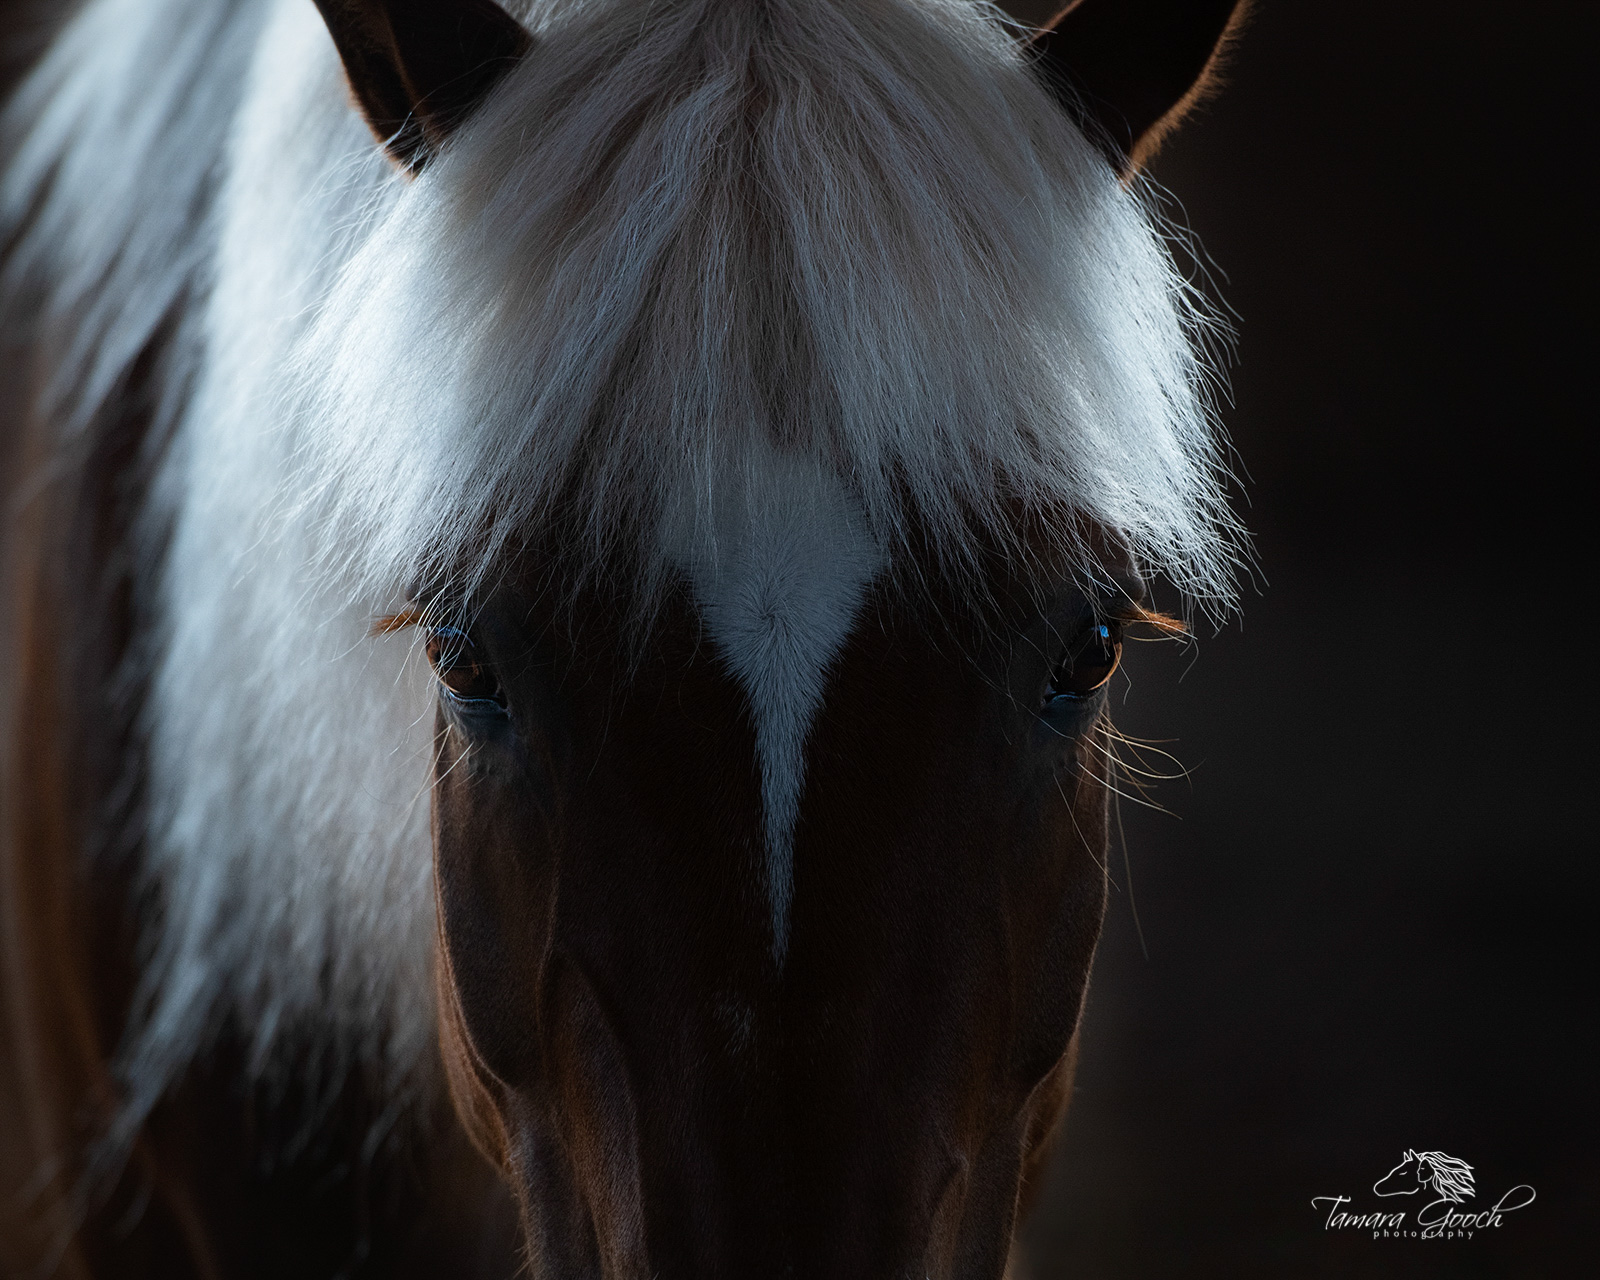 Idaho equine photographers, assignment, back light, commercial, commissioned, editorial, equestrian, equine, equine photographer, equine photography, equine photography workshops, eyes, fine art photo, photo